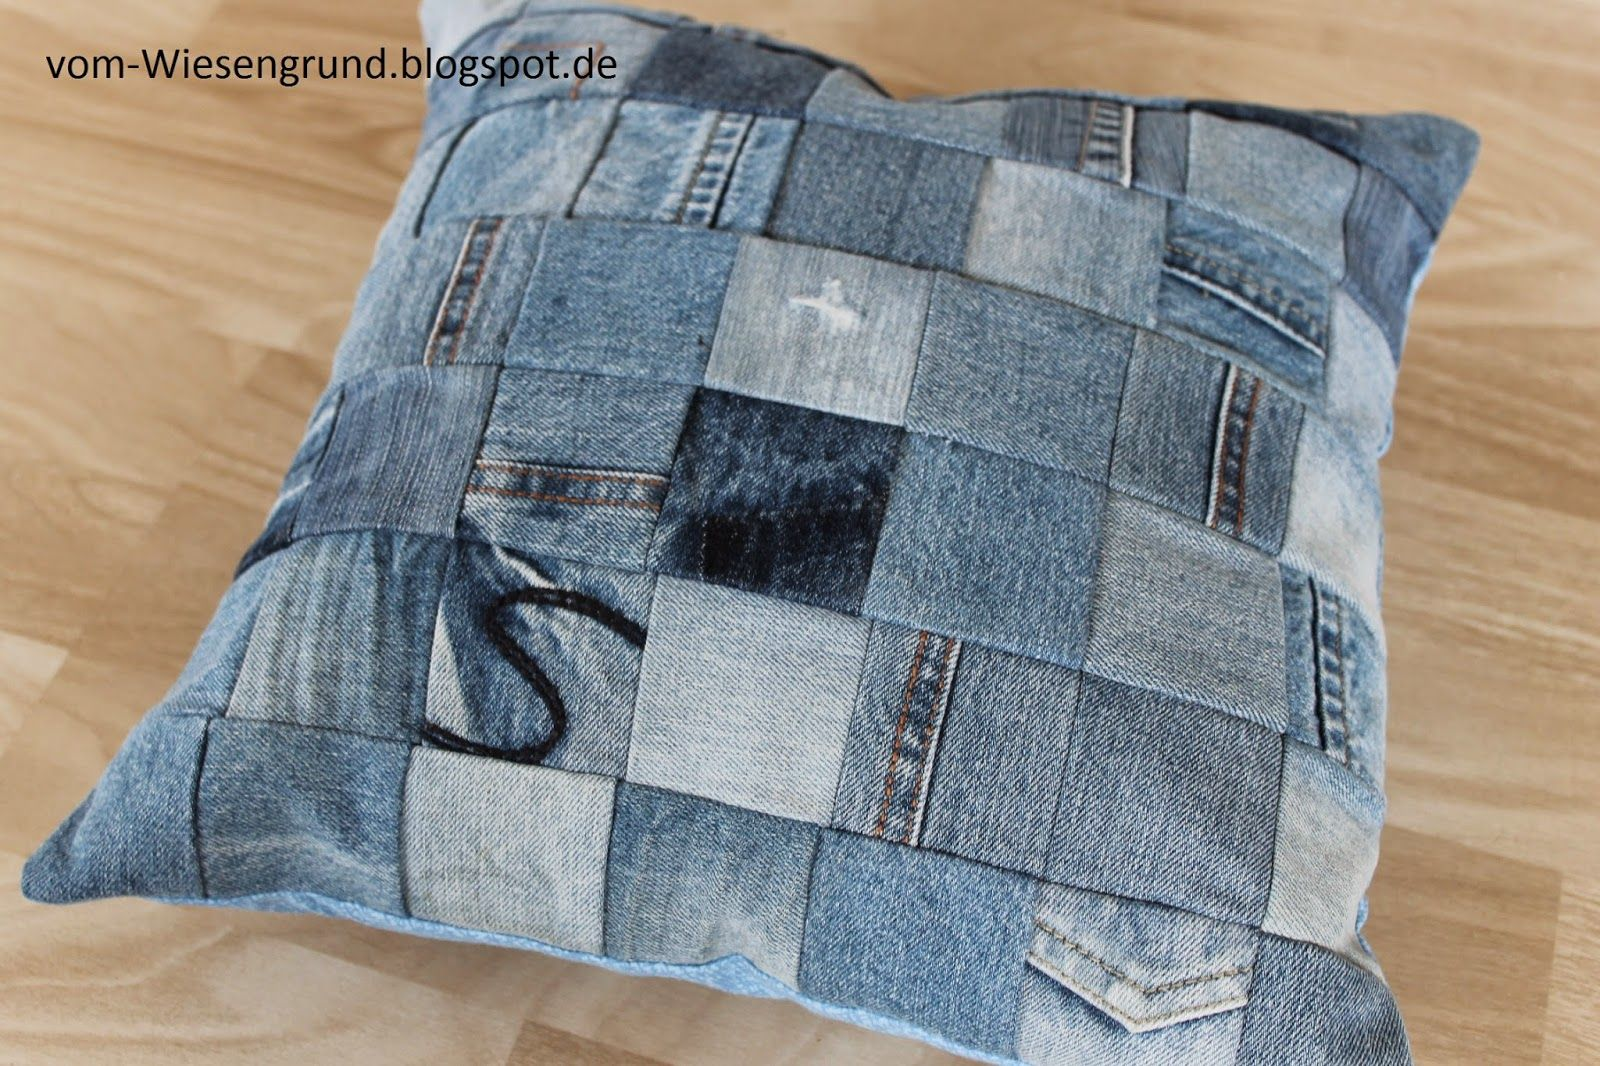 kissenh lle aus jeans pillowcase made from old pairs of. Black Bedroom Furniture Sets. Home Design Ideas